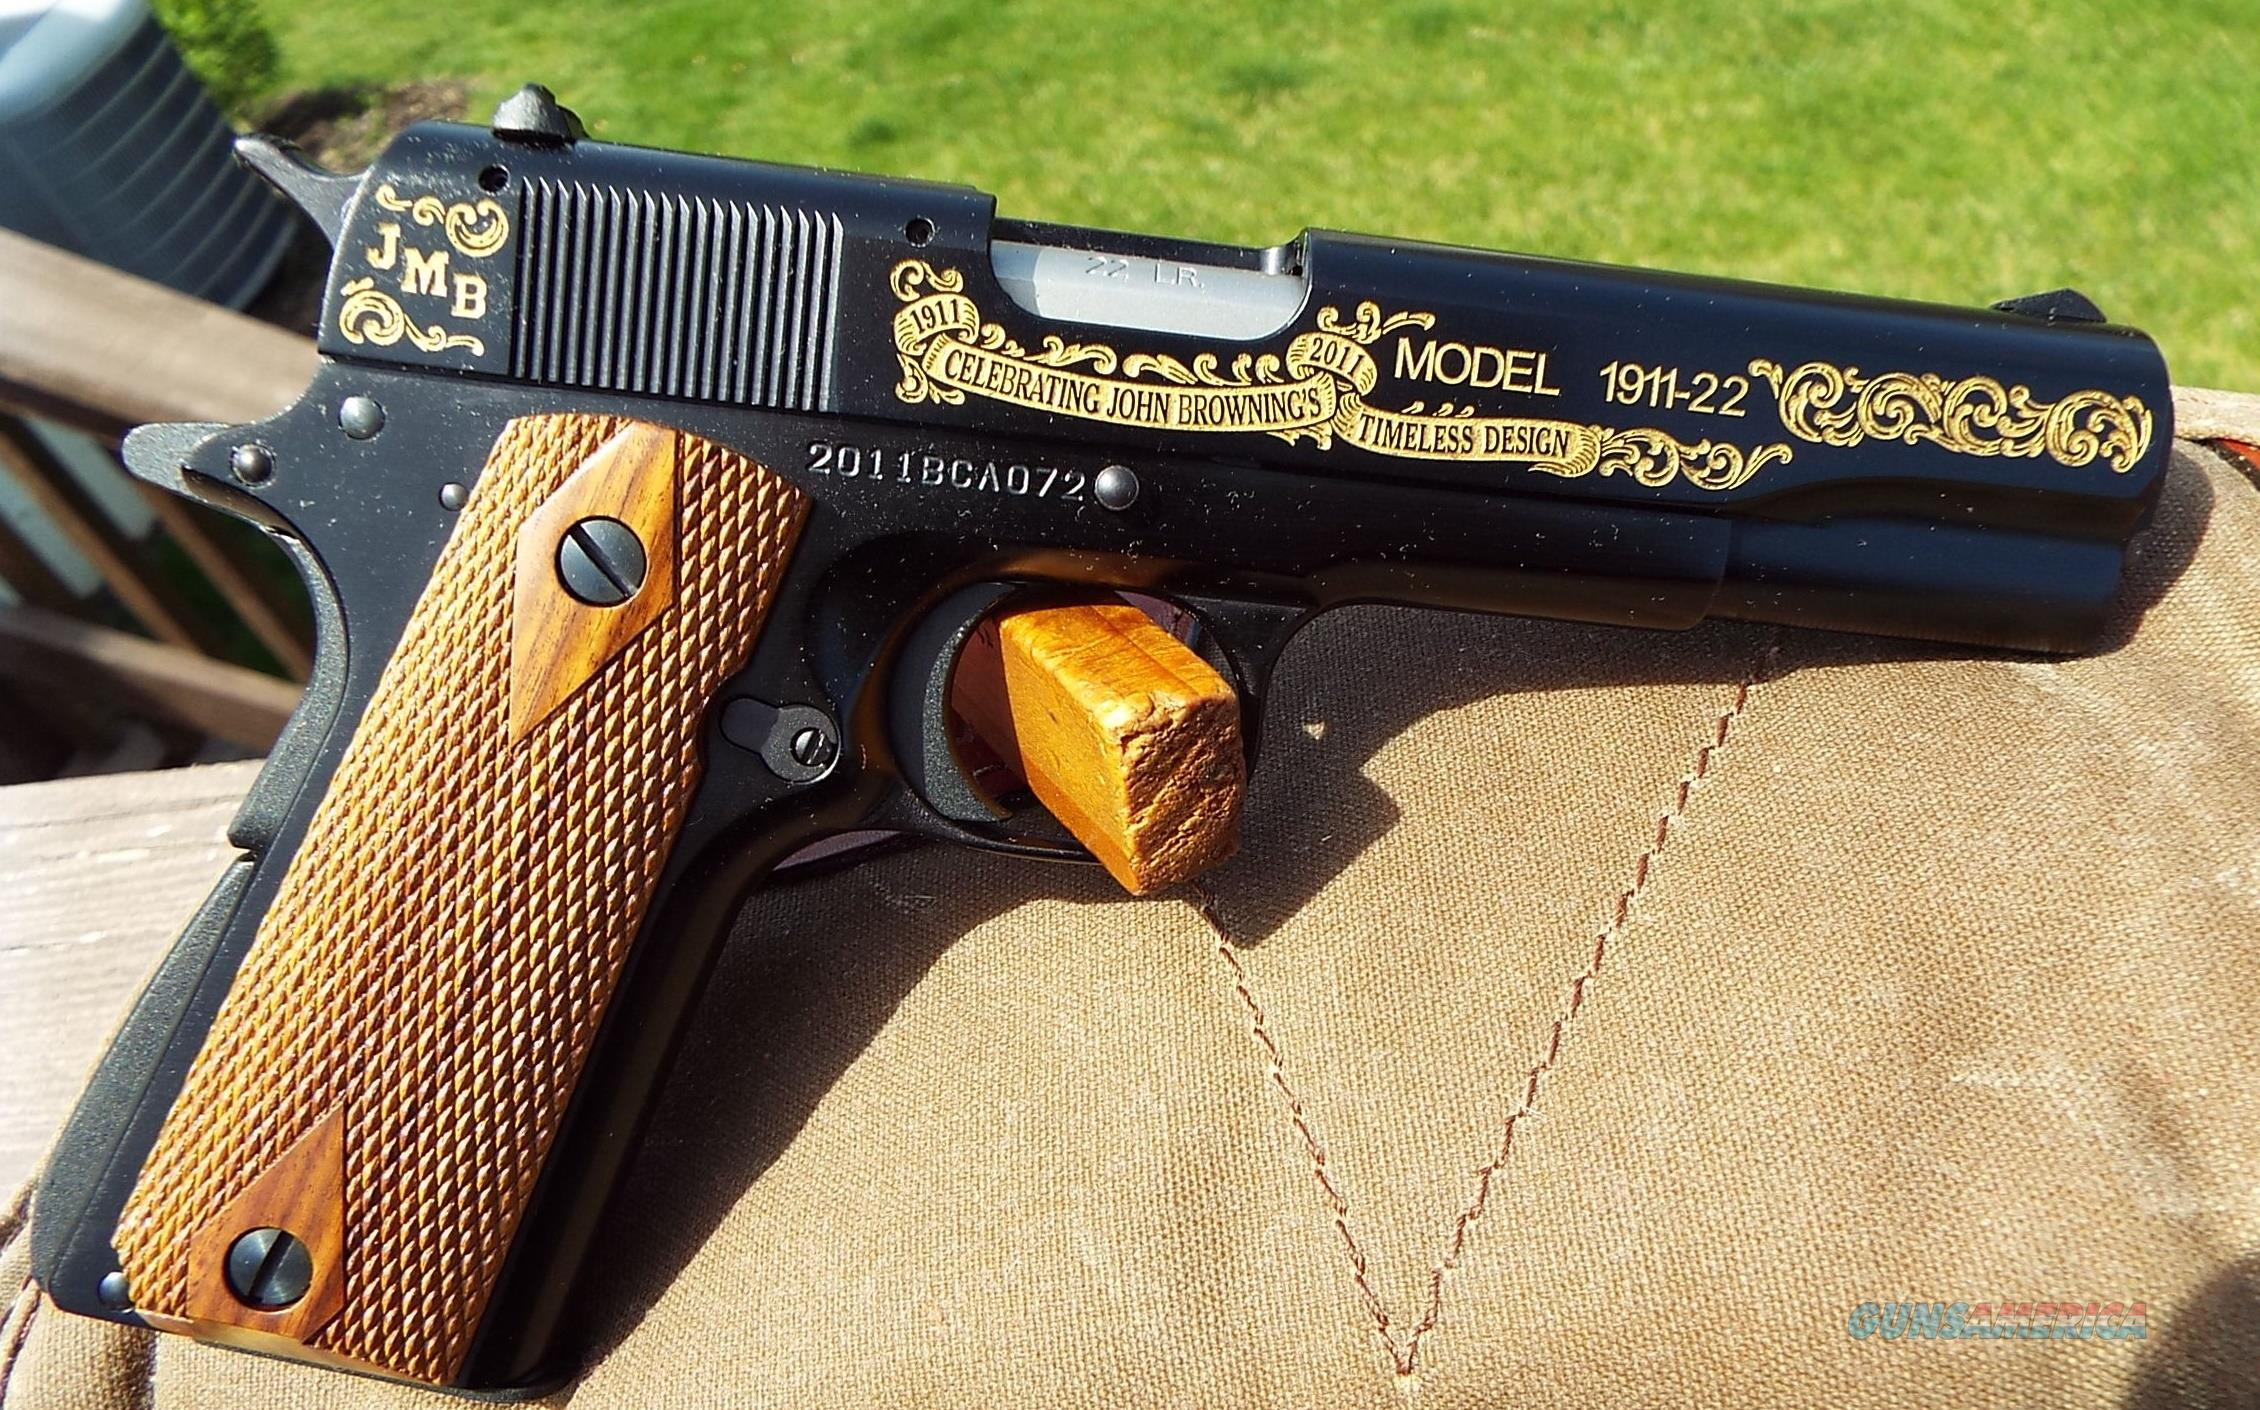 Browning 1911-22 Browning Collector Assoc. Ltd Edition BCA #72  New!  LAYAWAY OPTION  051805490  Guns > Pistols > Browning Pistols > Other Autos